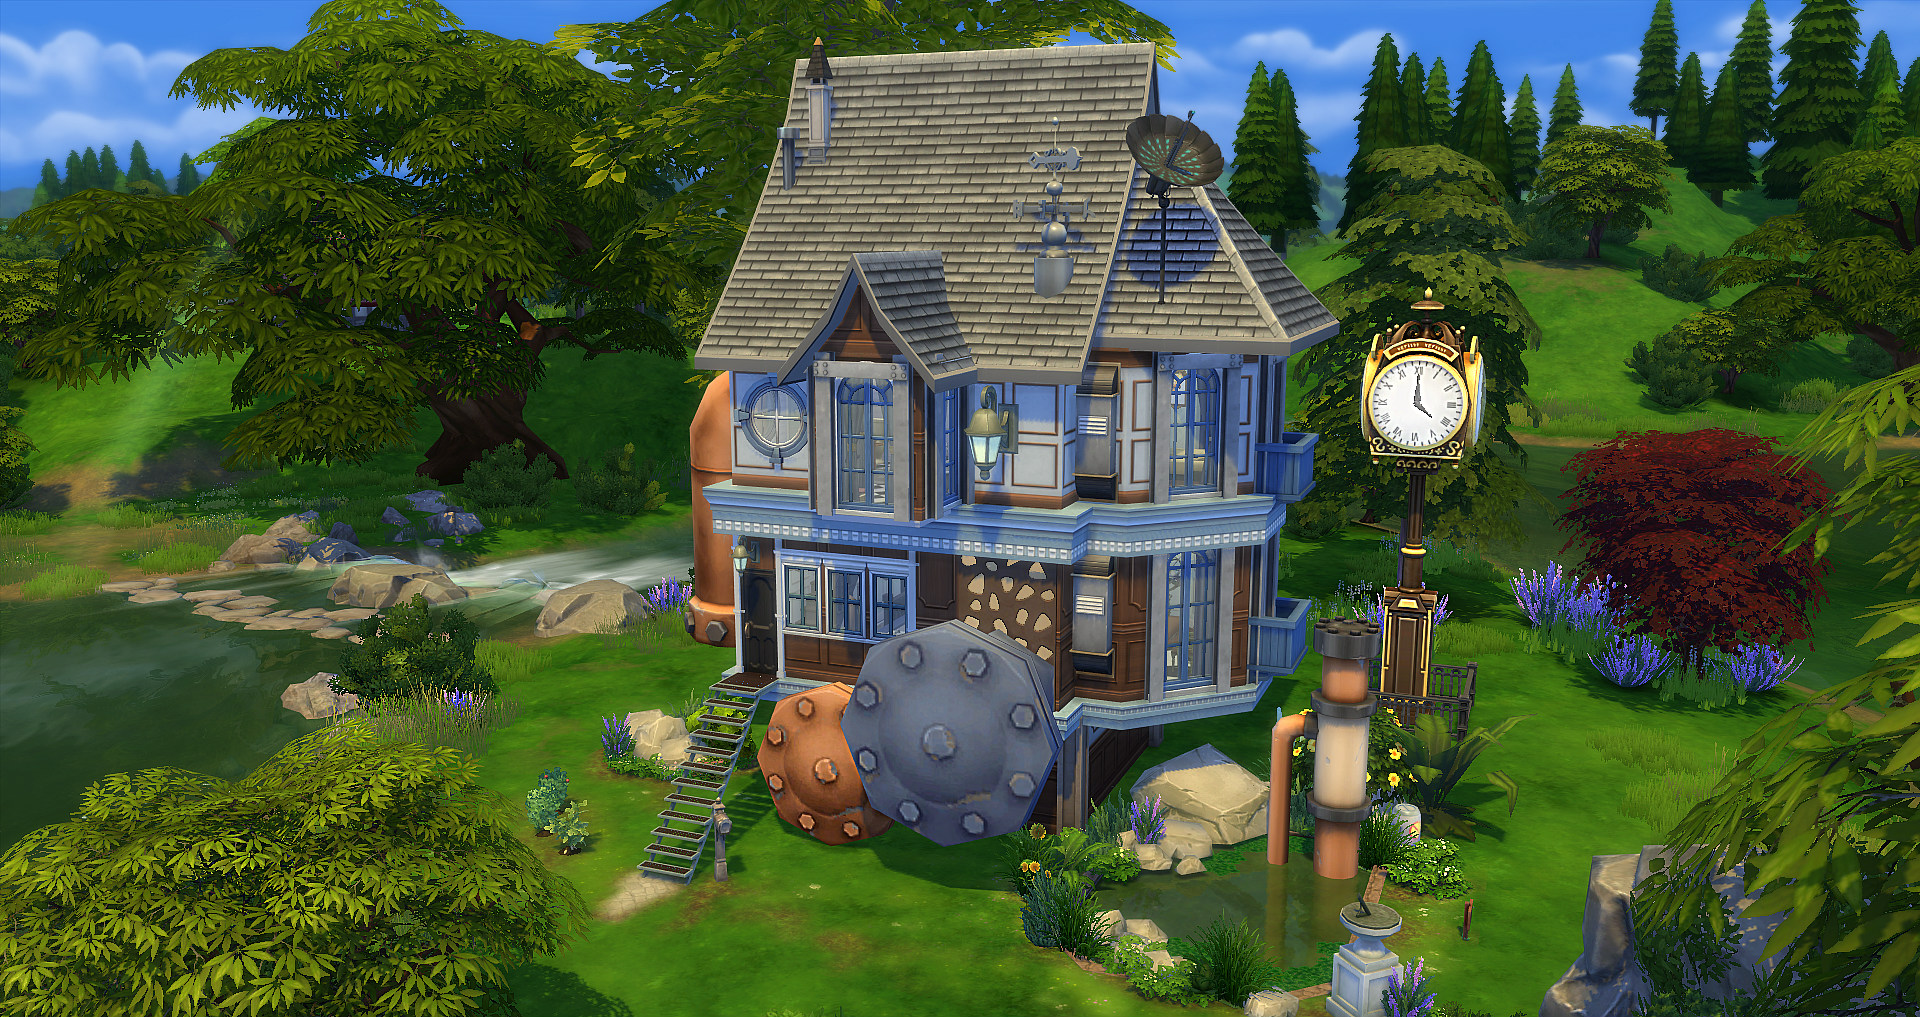 Steampunk studiosims creation for Petite maison atypique